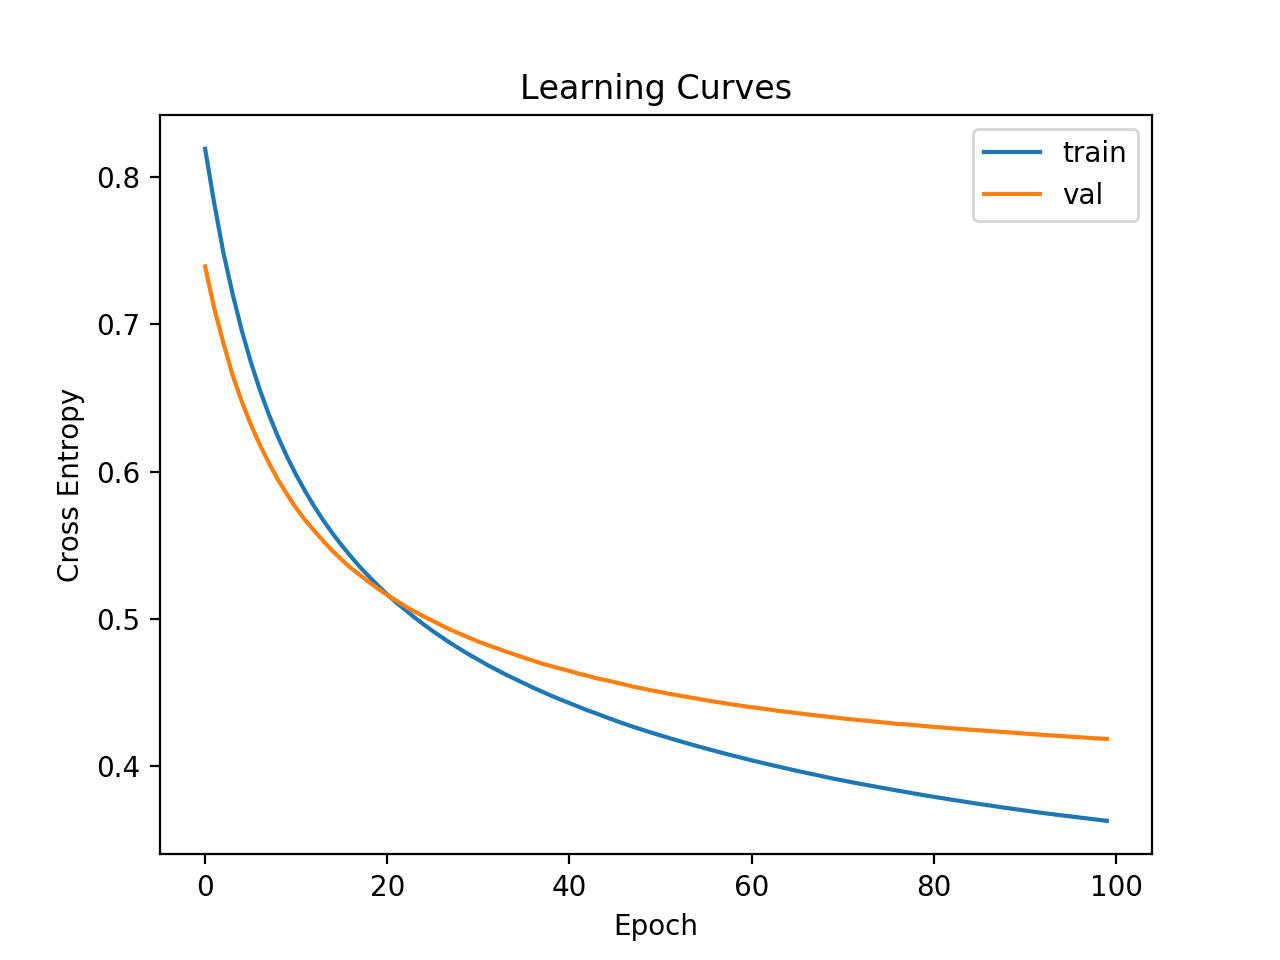 Learning Curves of Cross-Entropy Loss for a Deep Learning Model